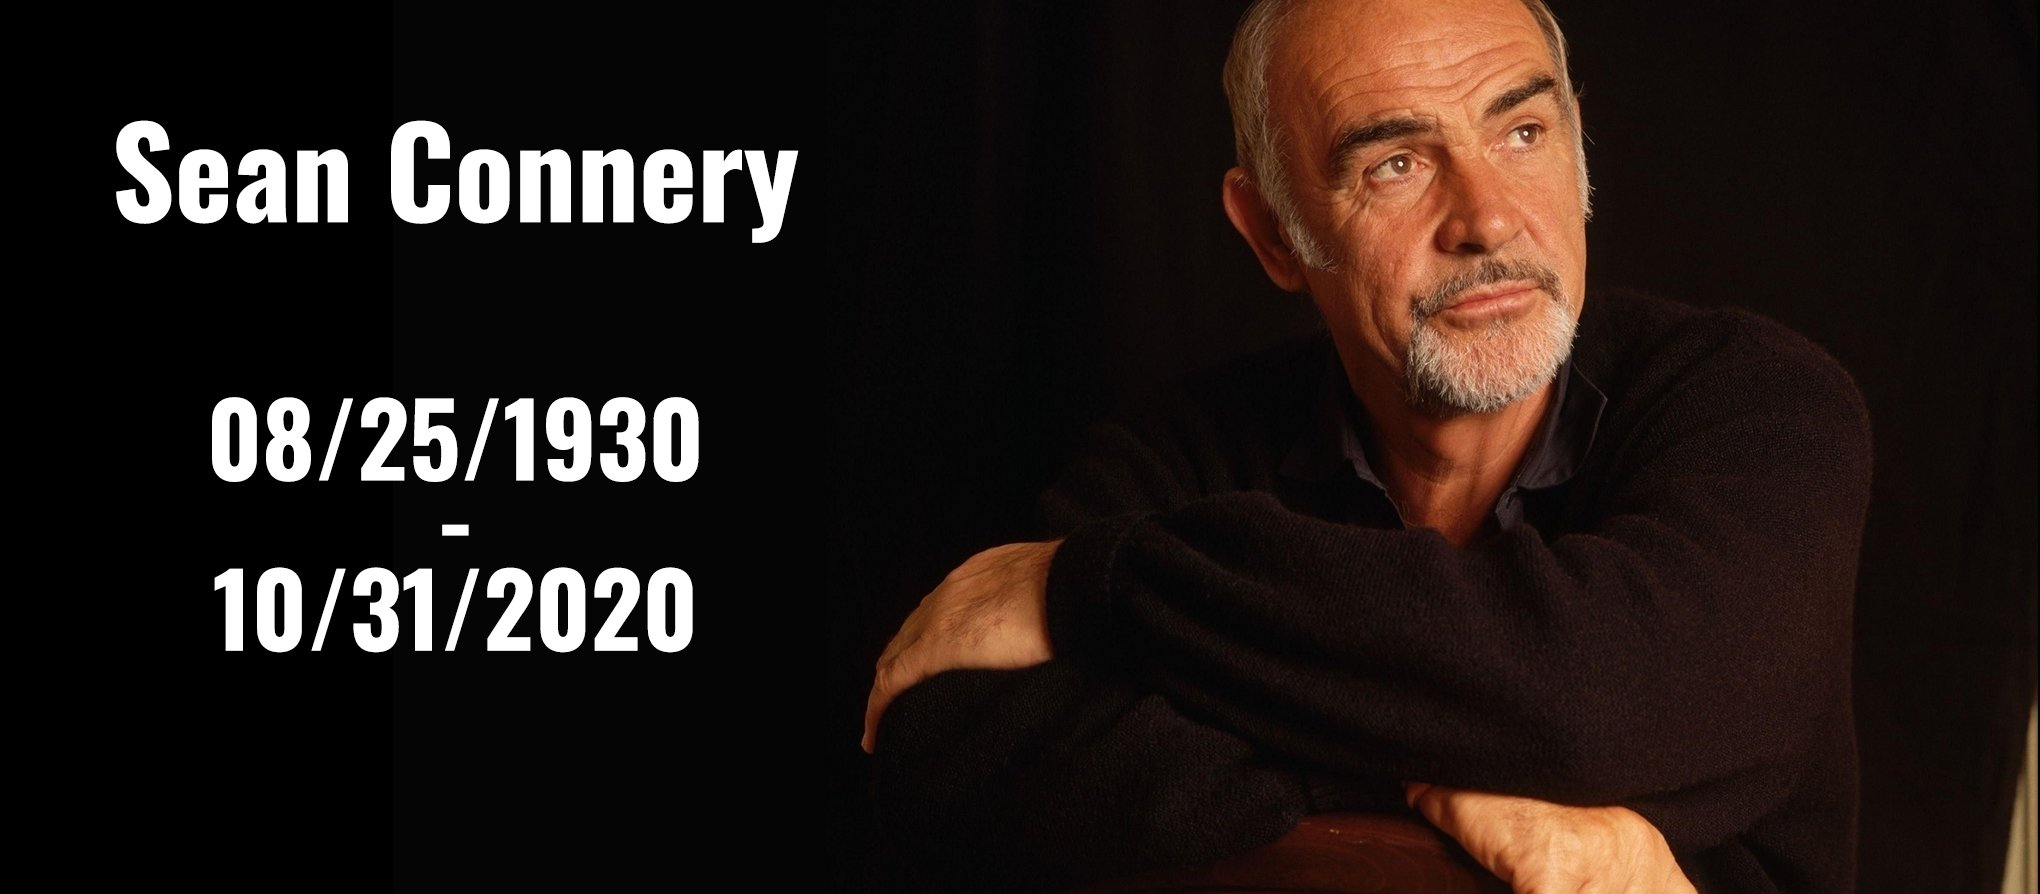 Passing of Sean Connery Episode Cover